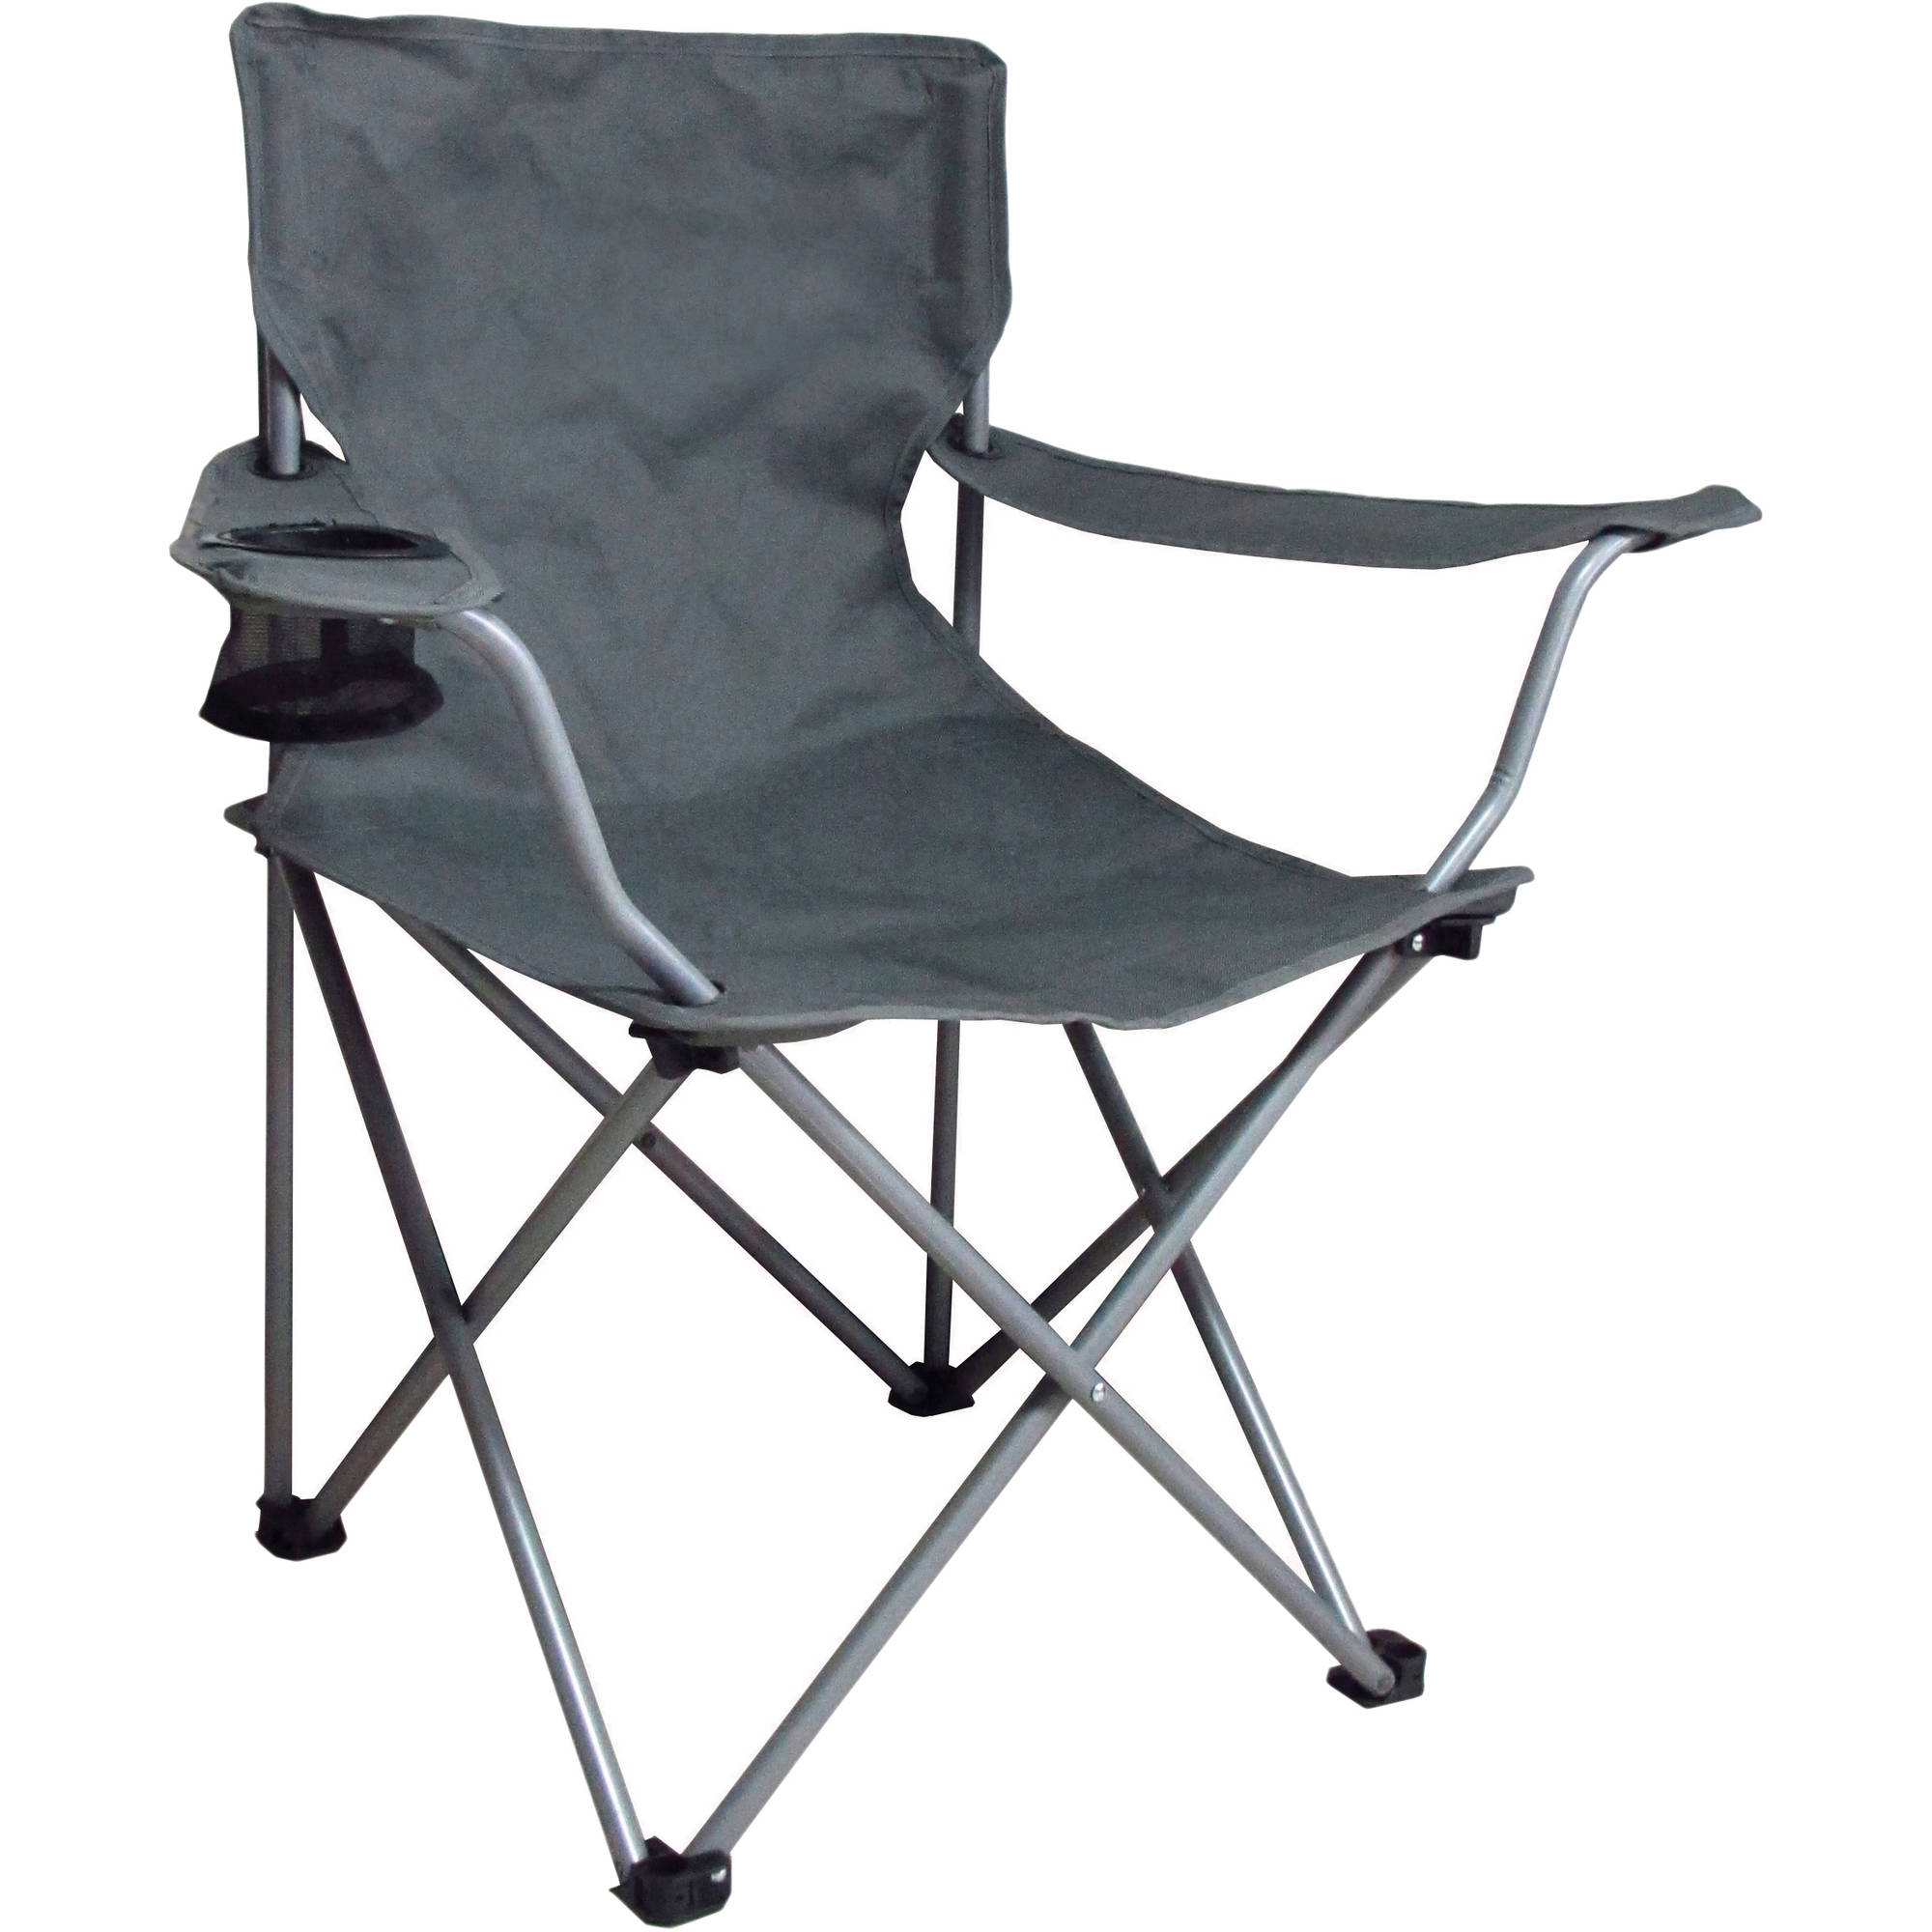 ozark trail folding chair - walmart